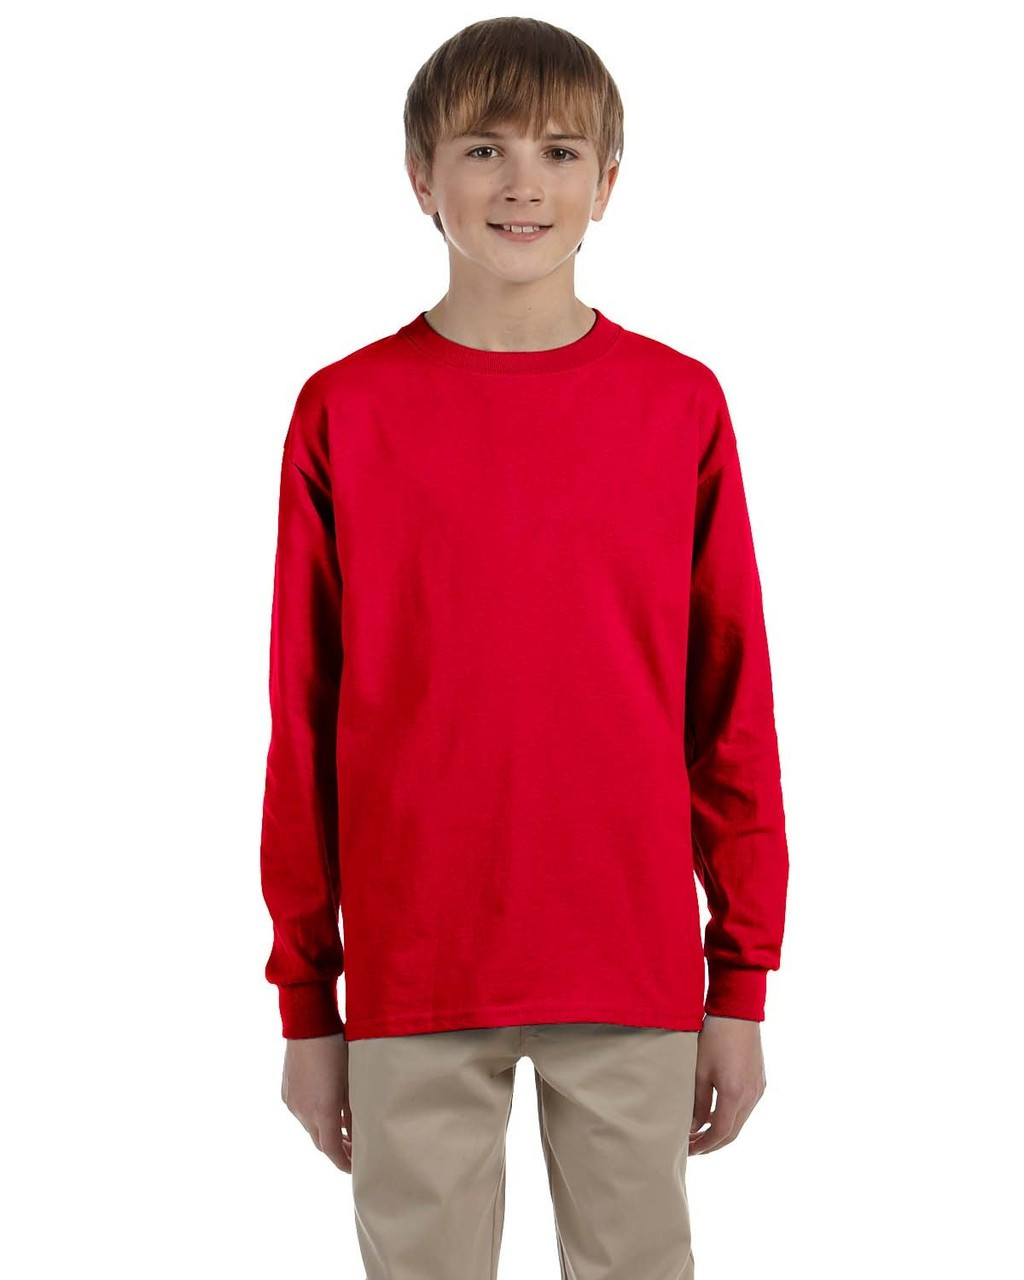 Red - G240B Ultra Cotton Youth Long Sleeve T-Shirt | Blankclothing.ca